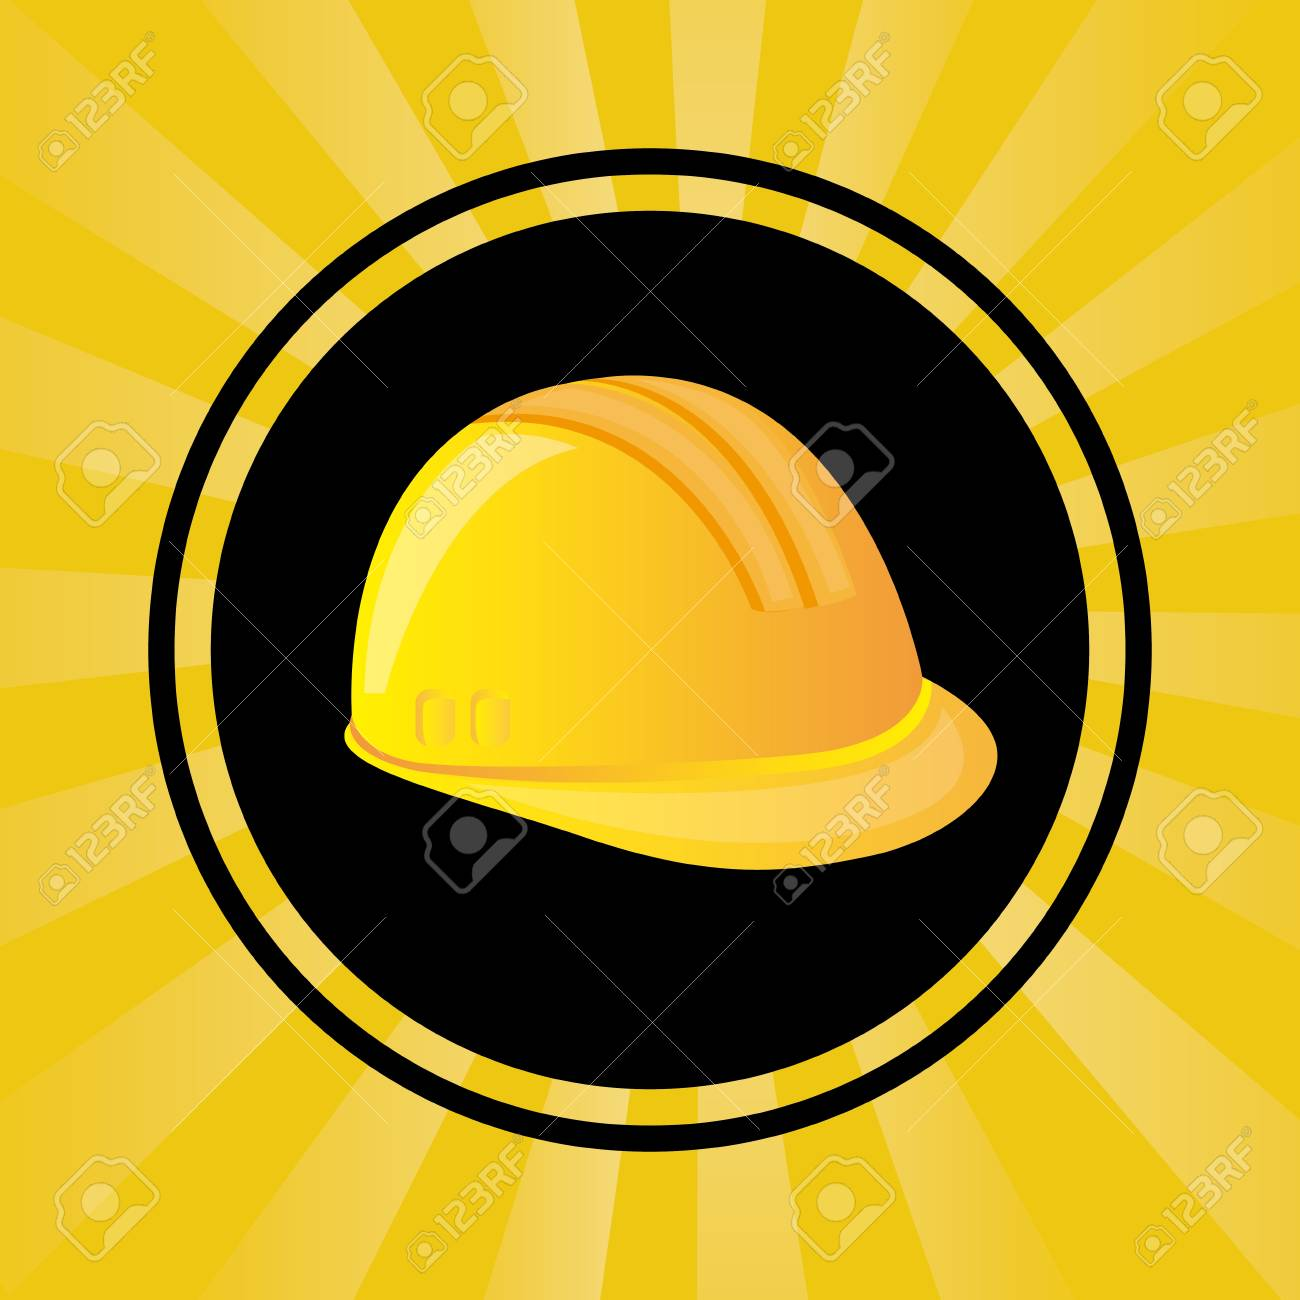 under construction design over yellow background vector illustration Stock Vector - 29761869